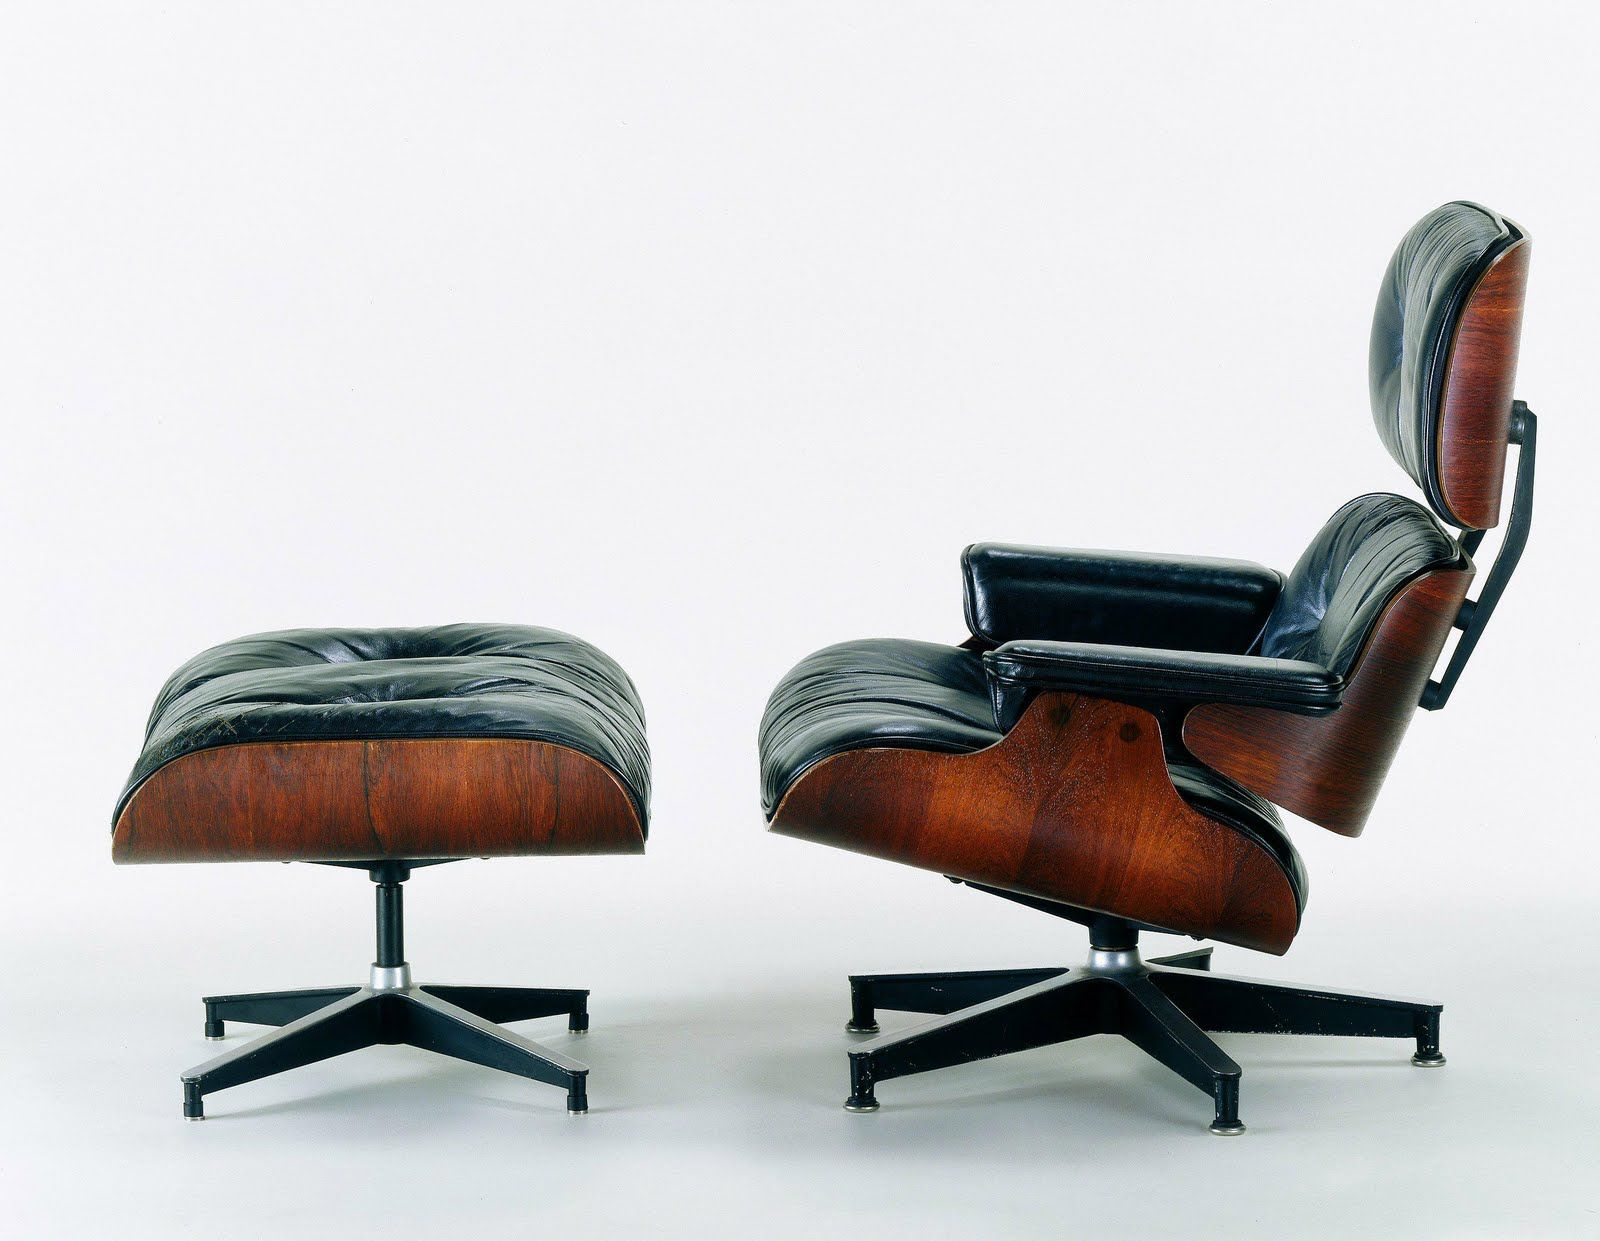 Charmant Charles Eames Lounge Chair U0026 Ottoman Sessel